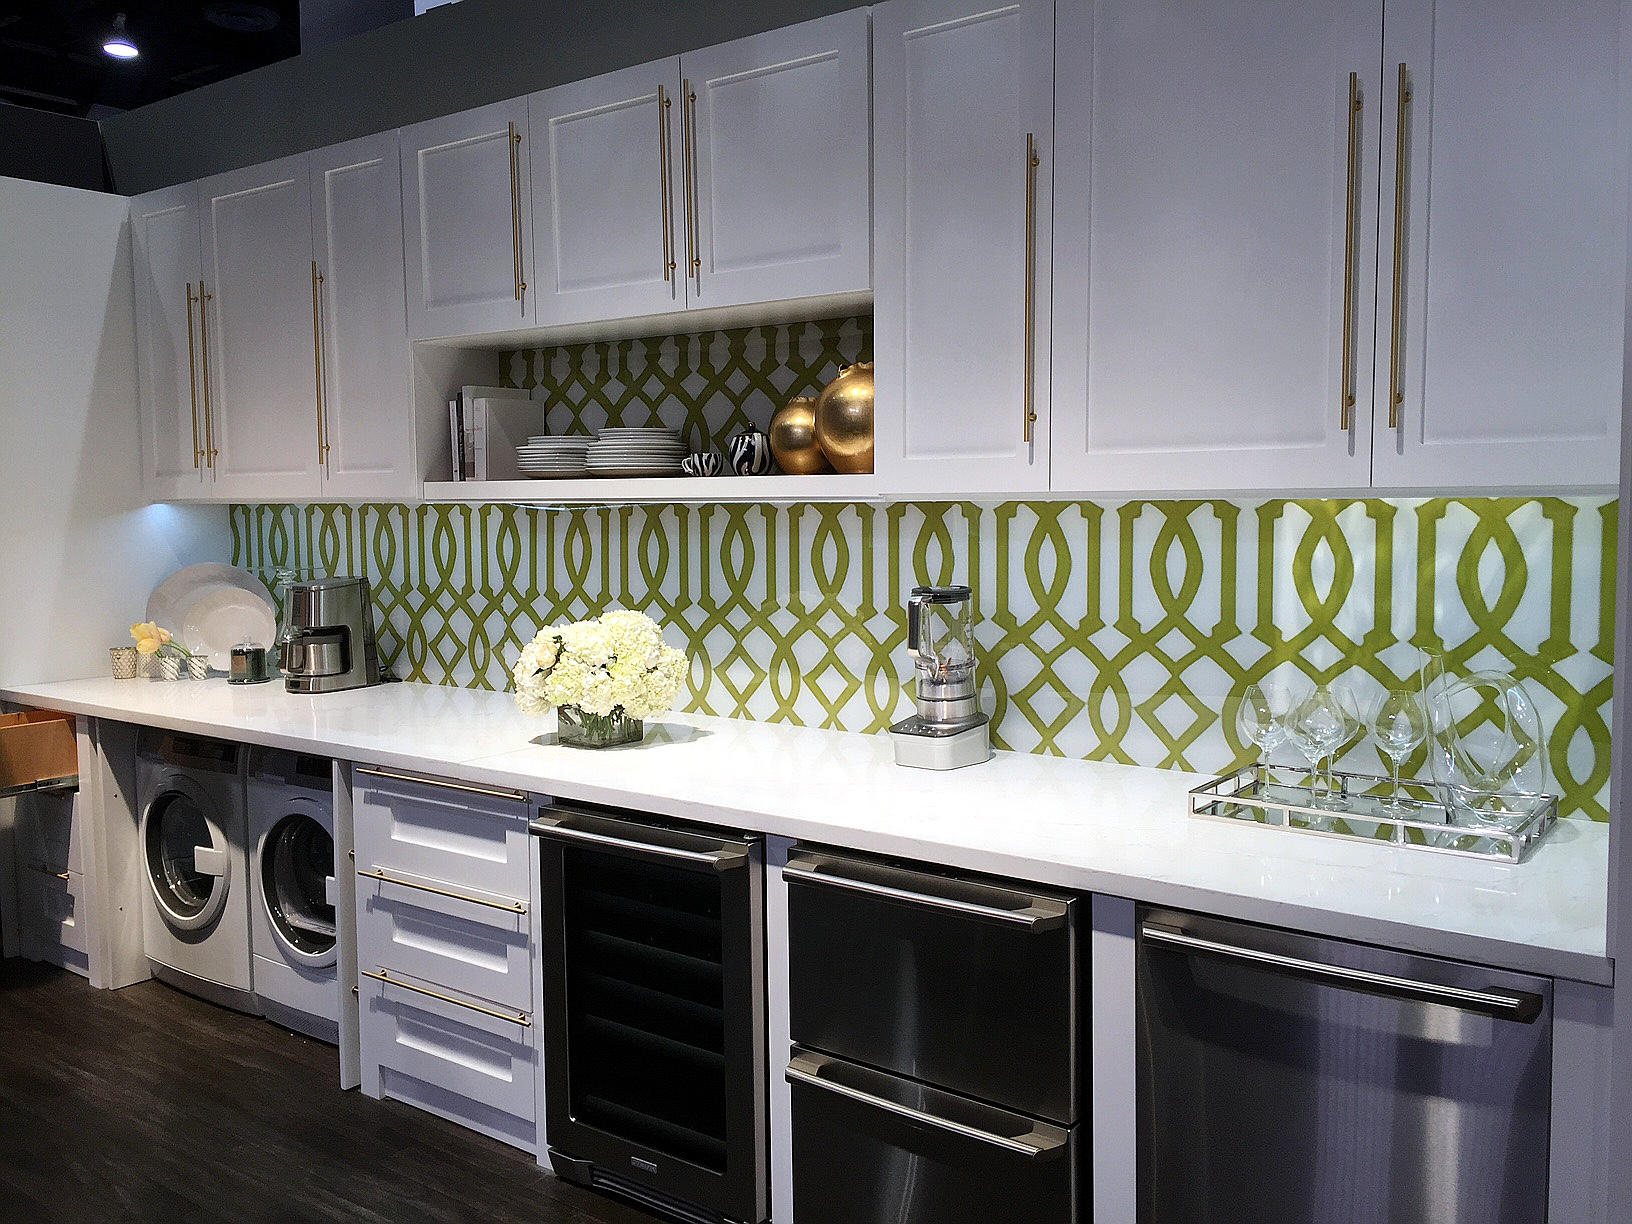 Kitchen Backsplash Las Vegas viva las vegas! kbis 2016 jb cutting